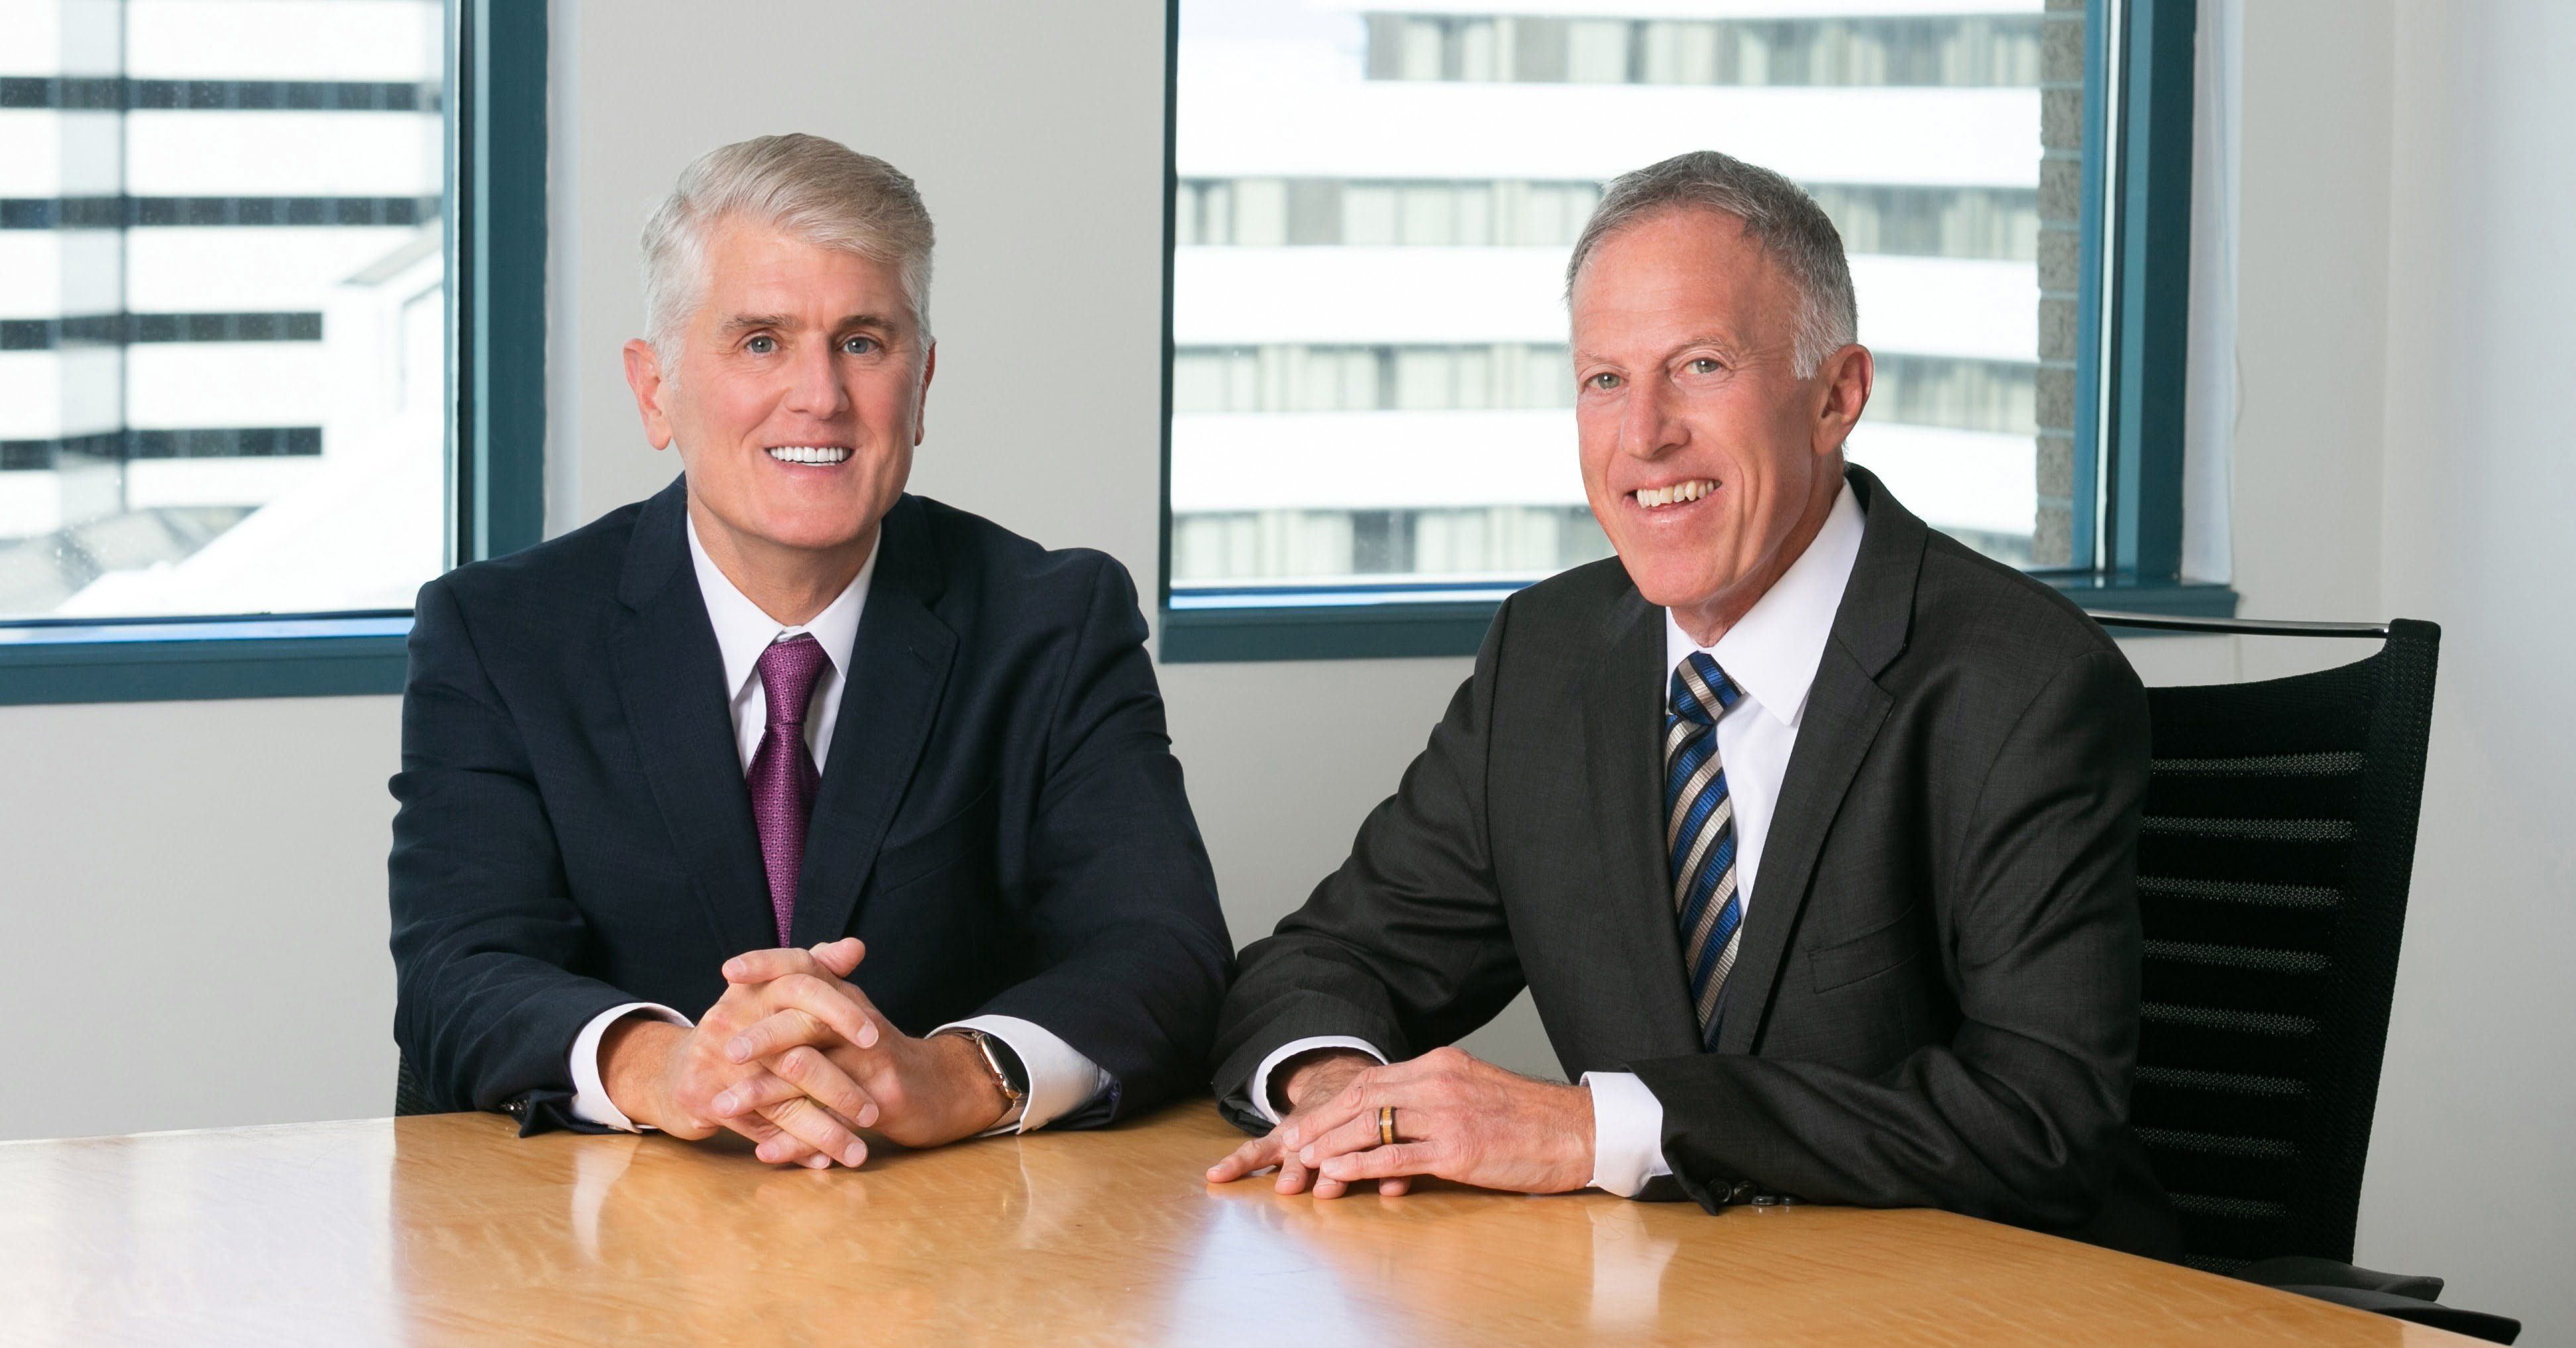 Jack Garson (left) with Ted Offit